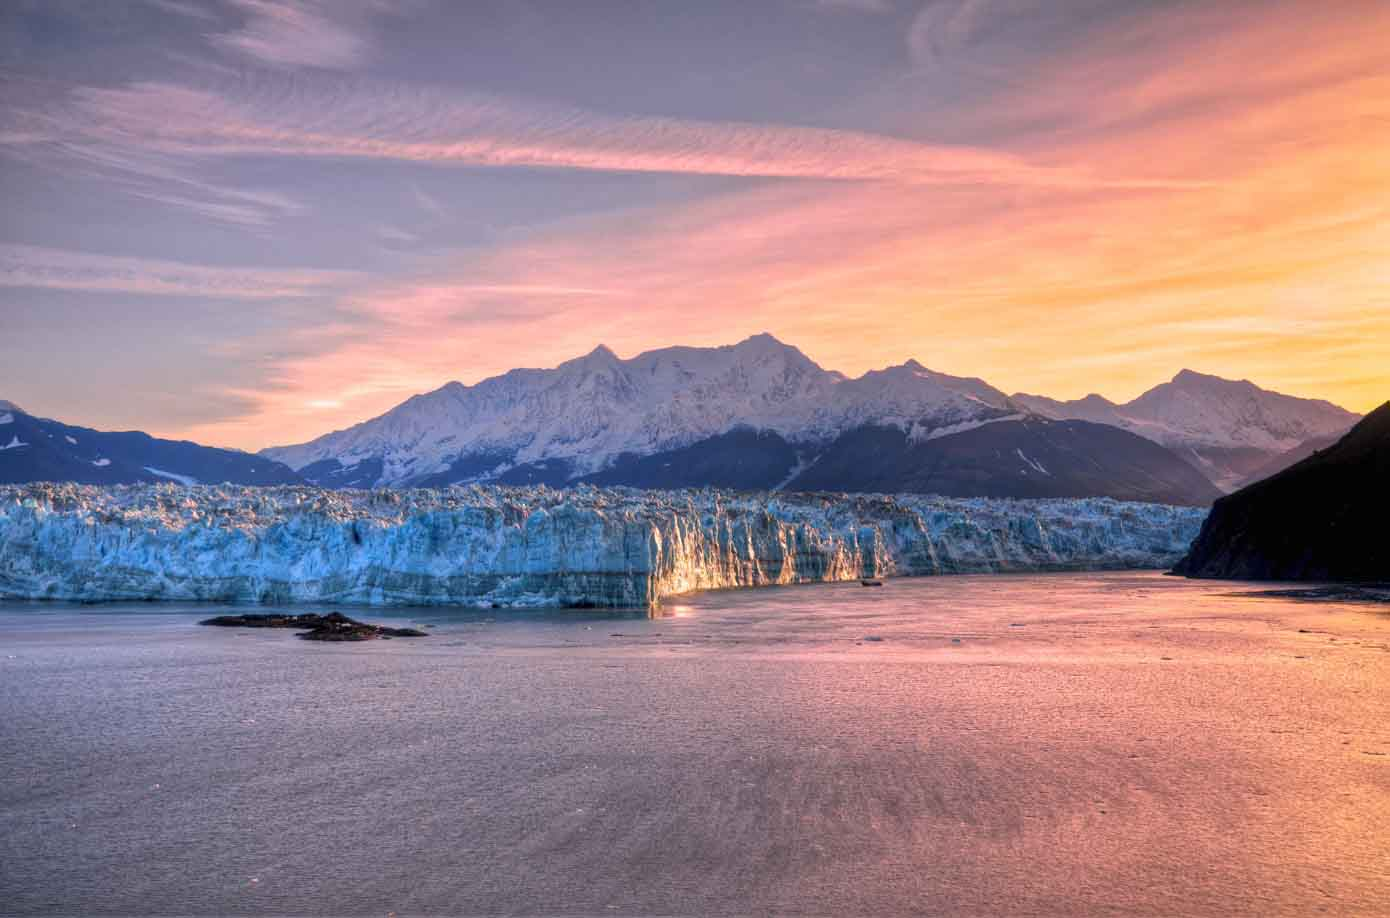 Sunrise as seen from the ocean peaking over a glacier in Alaska.